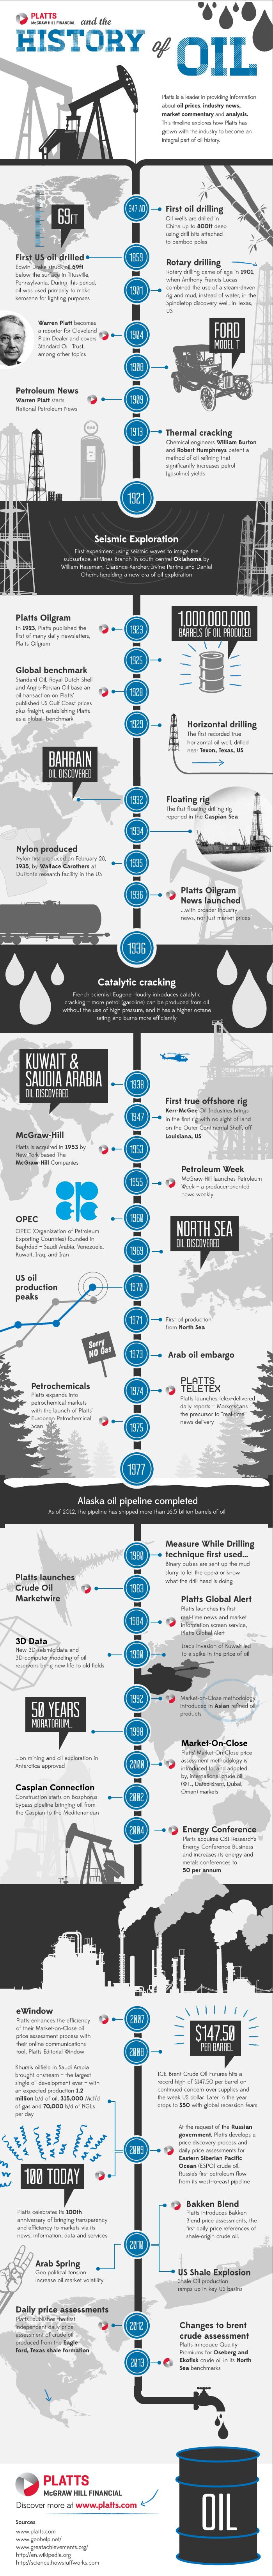 The Complete History Of Oil Drilling